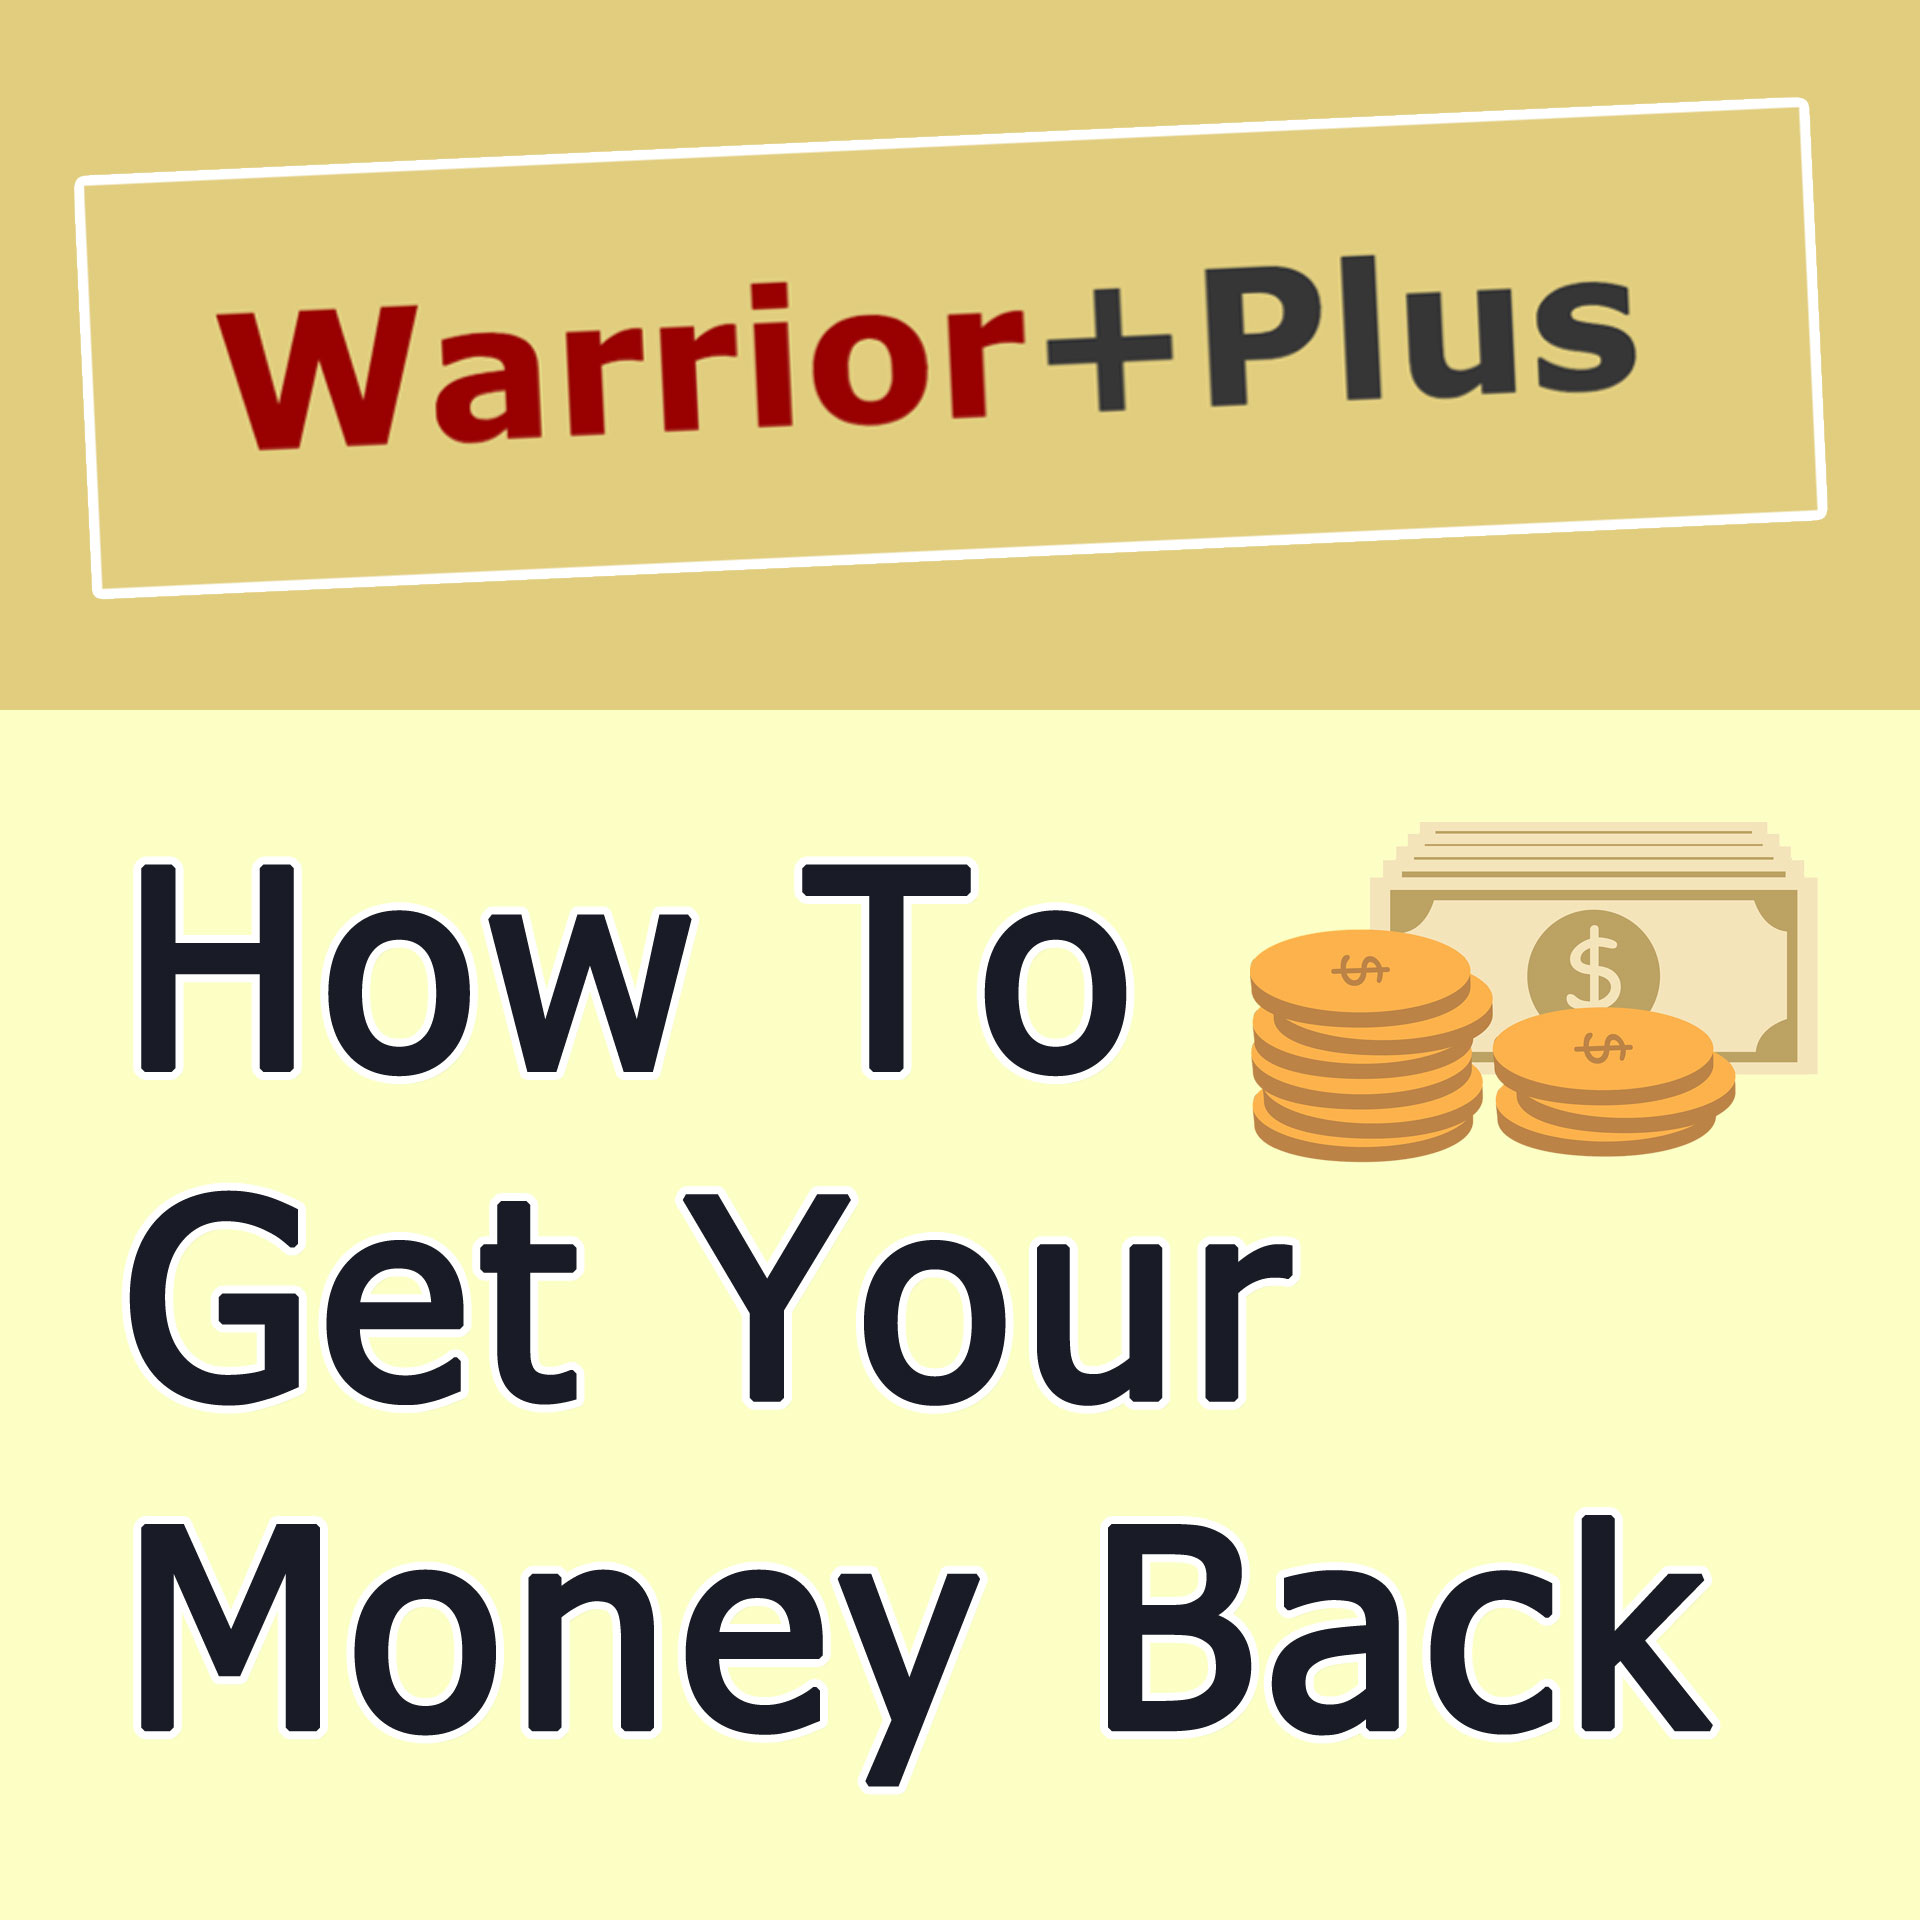 How To Get a Refund From WarriorPlus